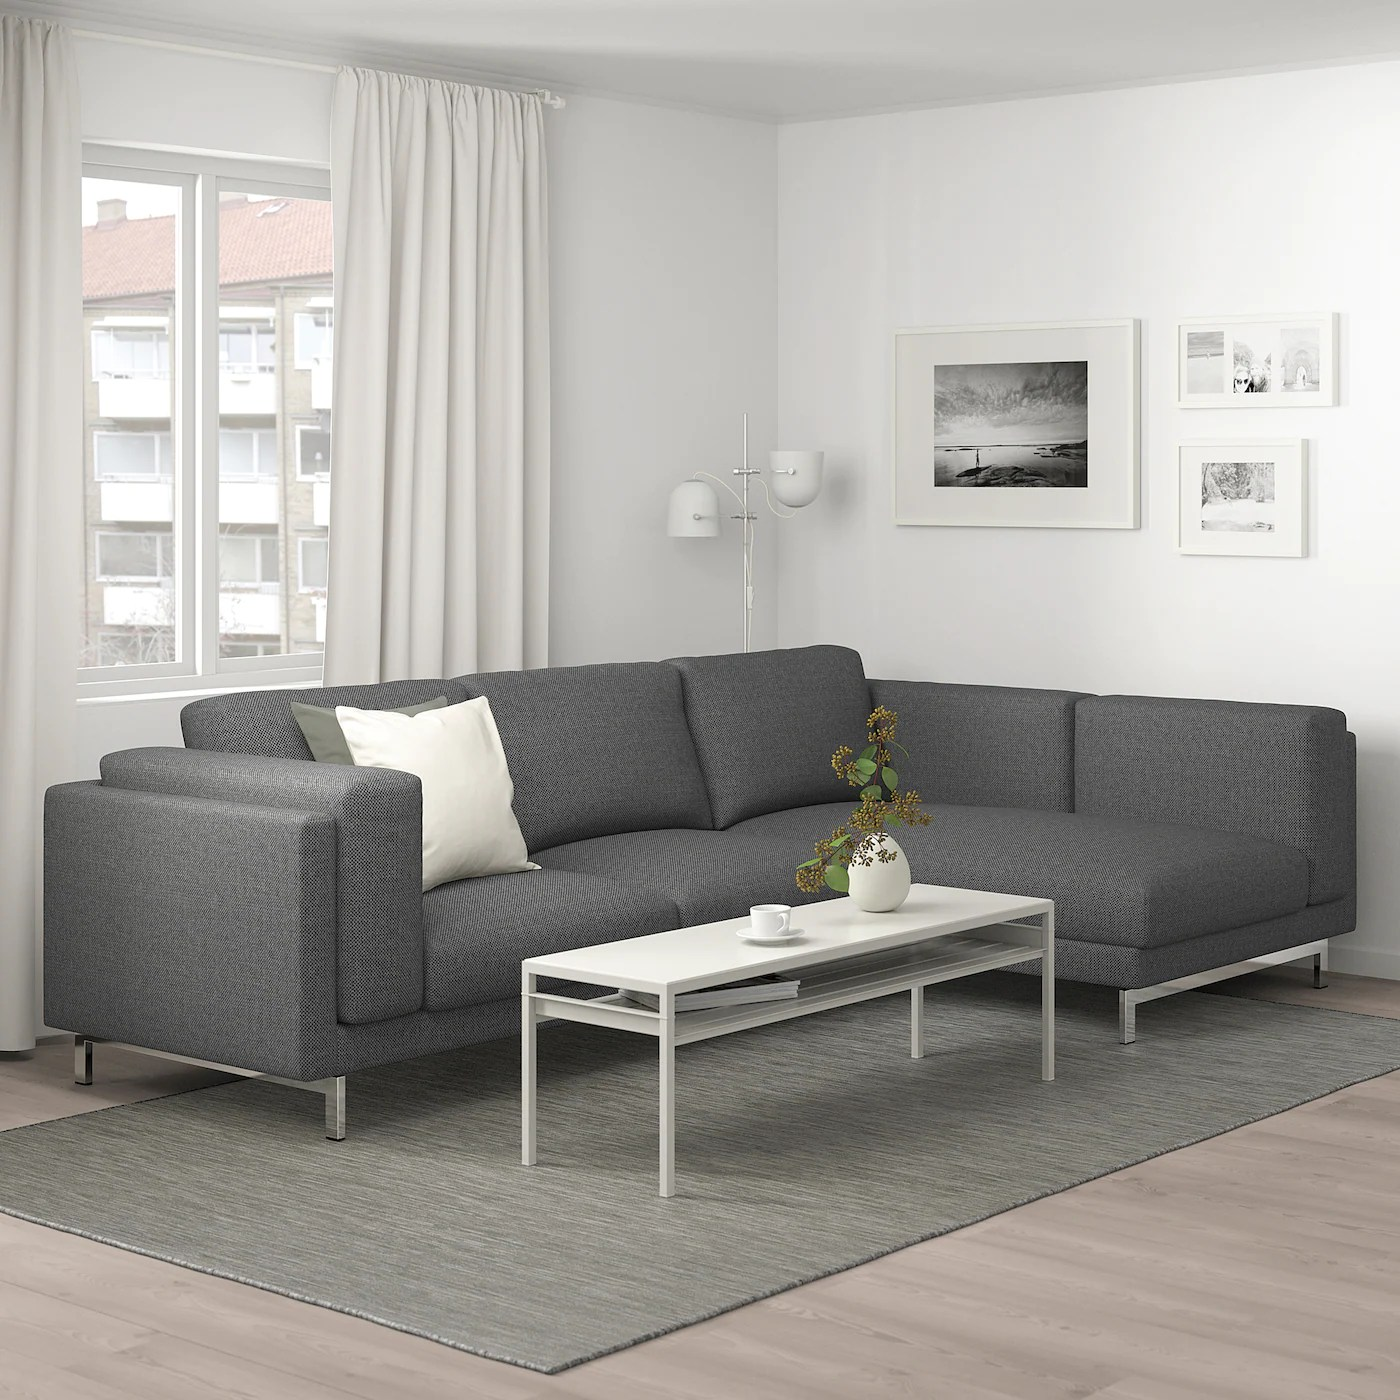 Replace your old färlöv 3 seat sofa covers with our custom made covers which include: NOCKEBY Sofá 3 plazas - con chaiselongue dcha, Lejde gris ...